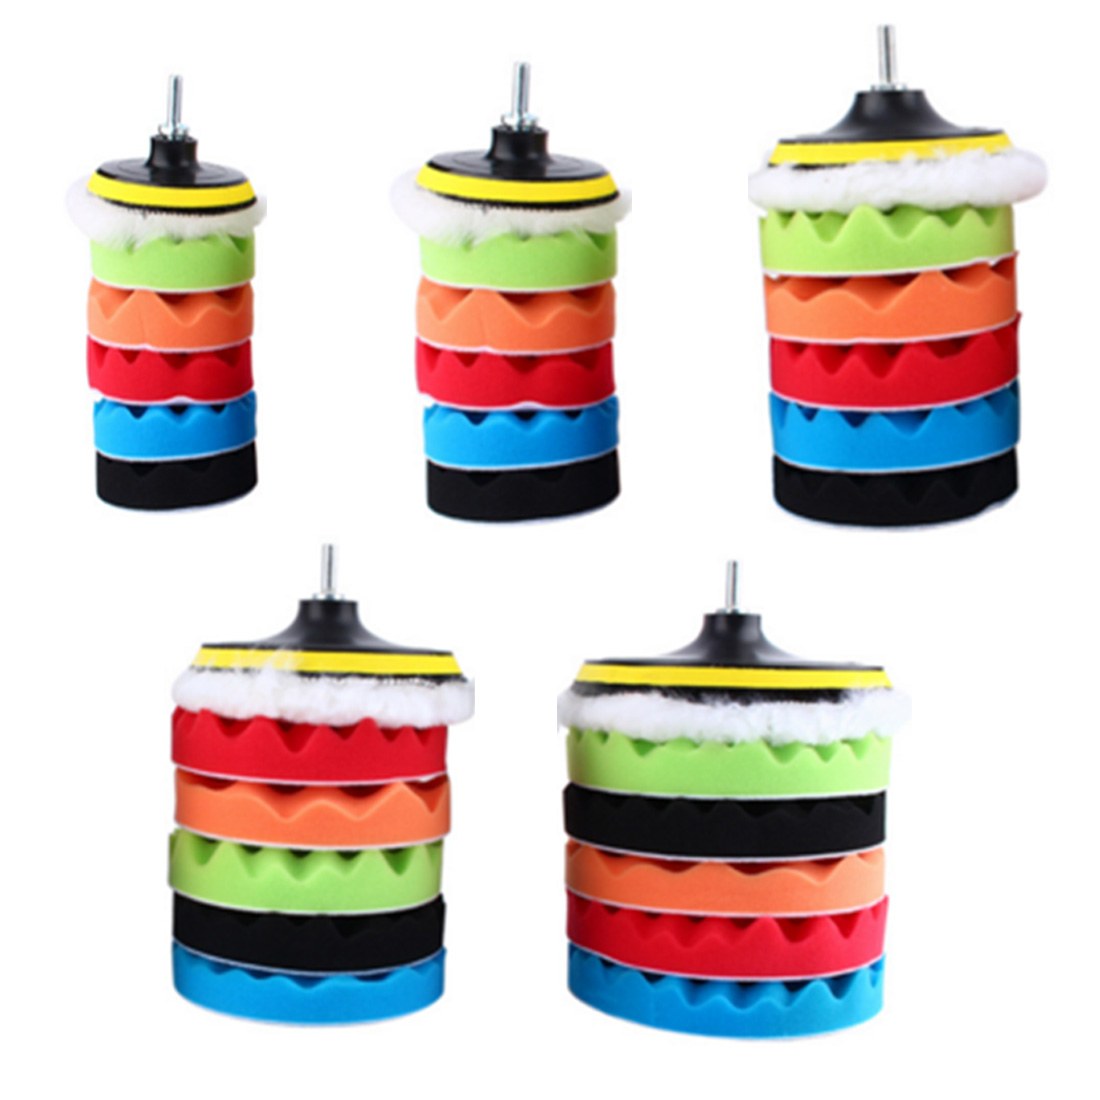 2018 New 3/4/5/6/7 Inch Automotive Polishing Tools Car Polishing Disc Sponge Polishing Wheel Wool Pad 8 Piece Beauty Waxing Set